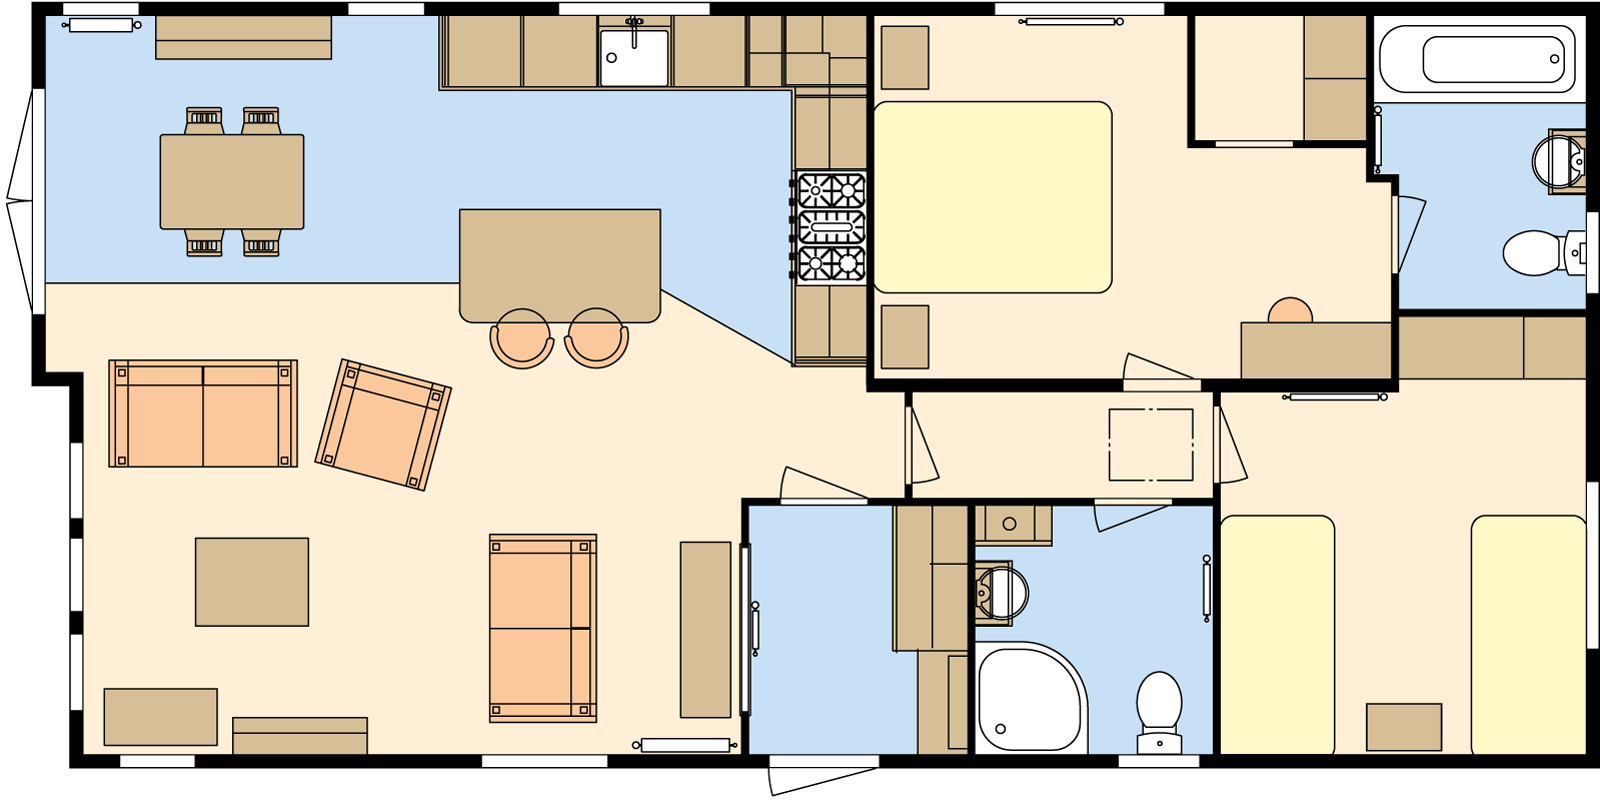 40 × 20 – 2 bedroom/4 berth